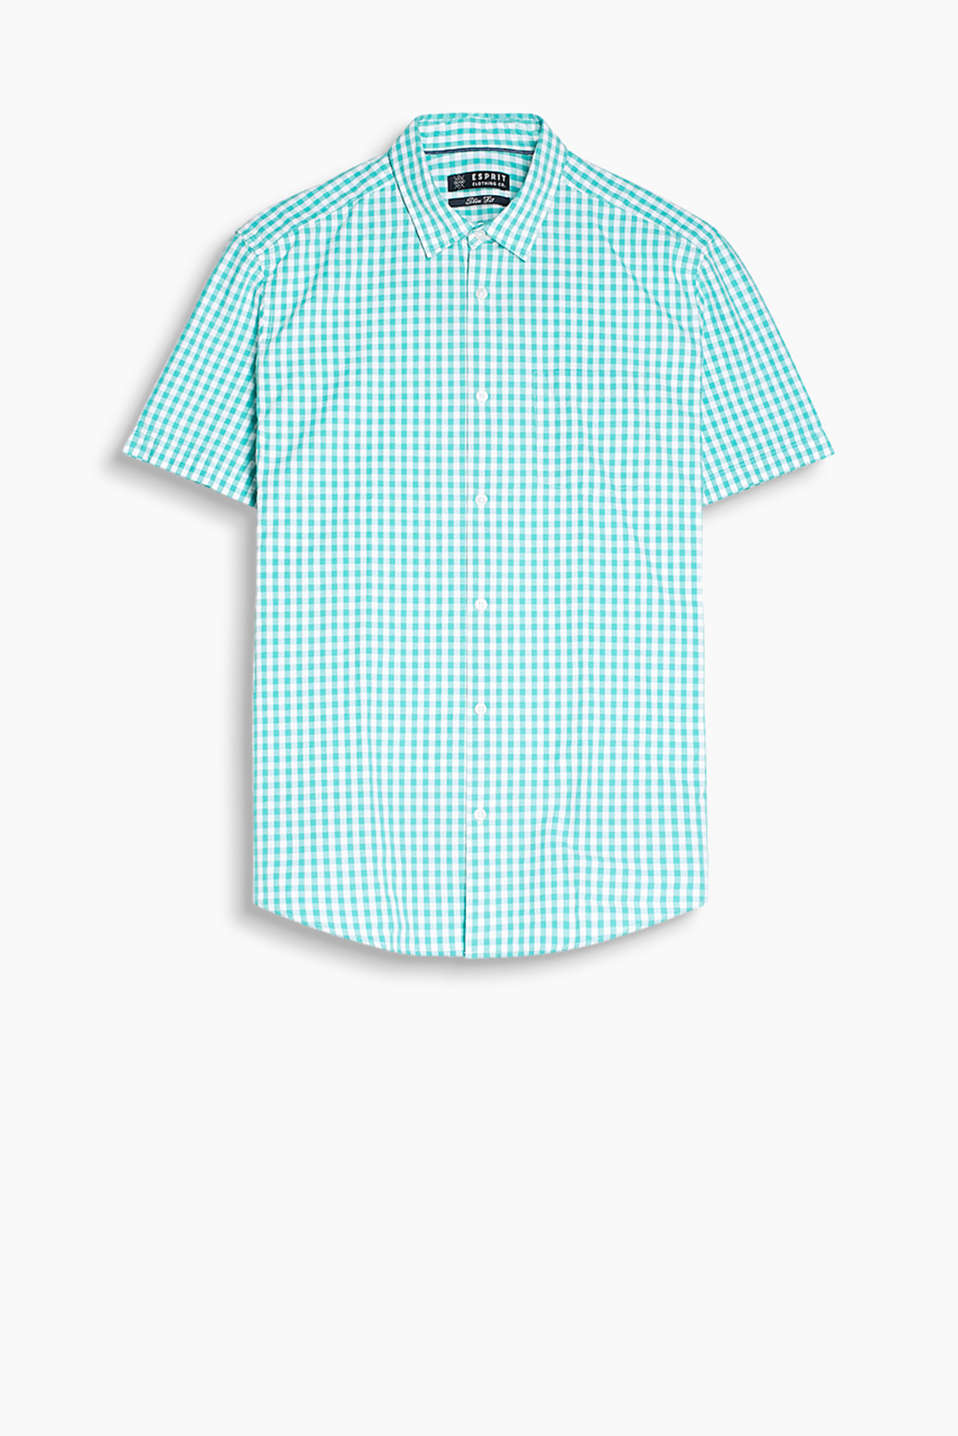 Sensationally summery shirt with a brightly coloured, glencheck pattern